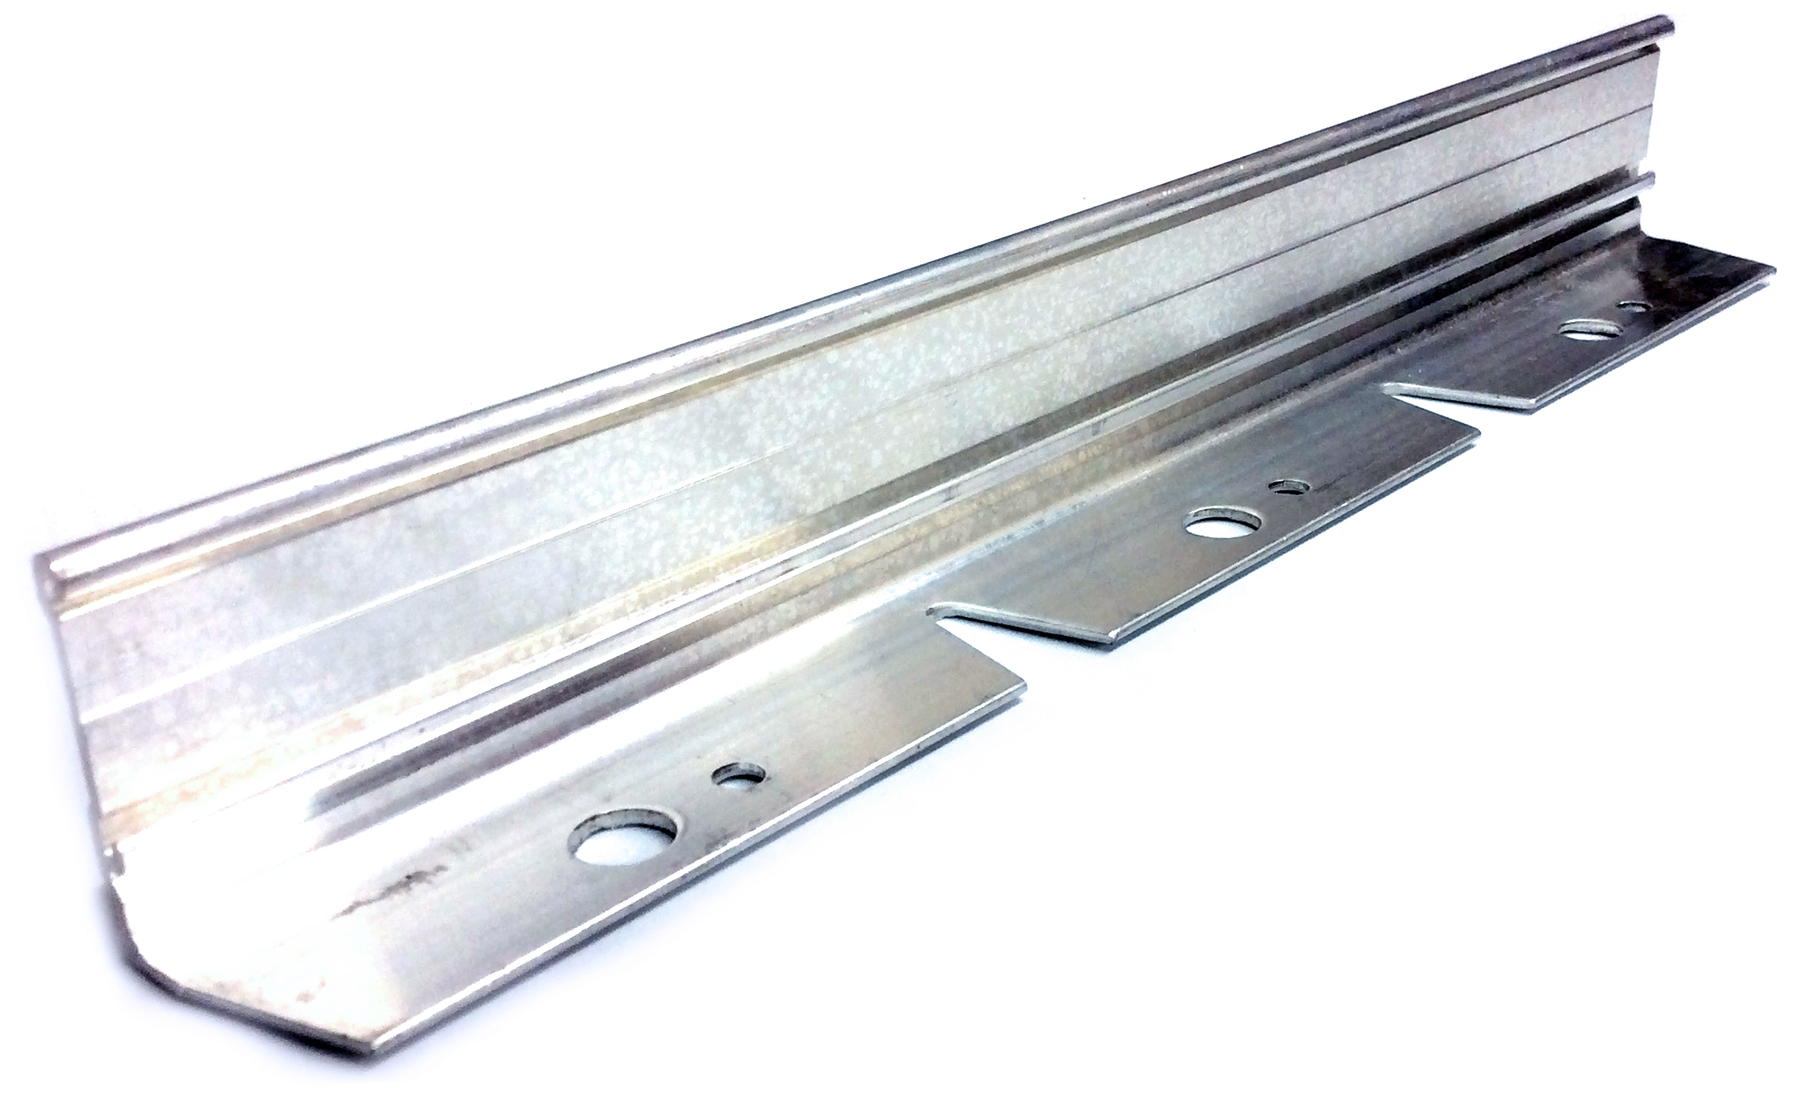 Permaloc Aluminum Edging Restraint - StructurEdge